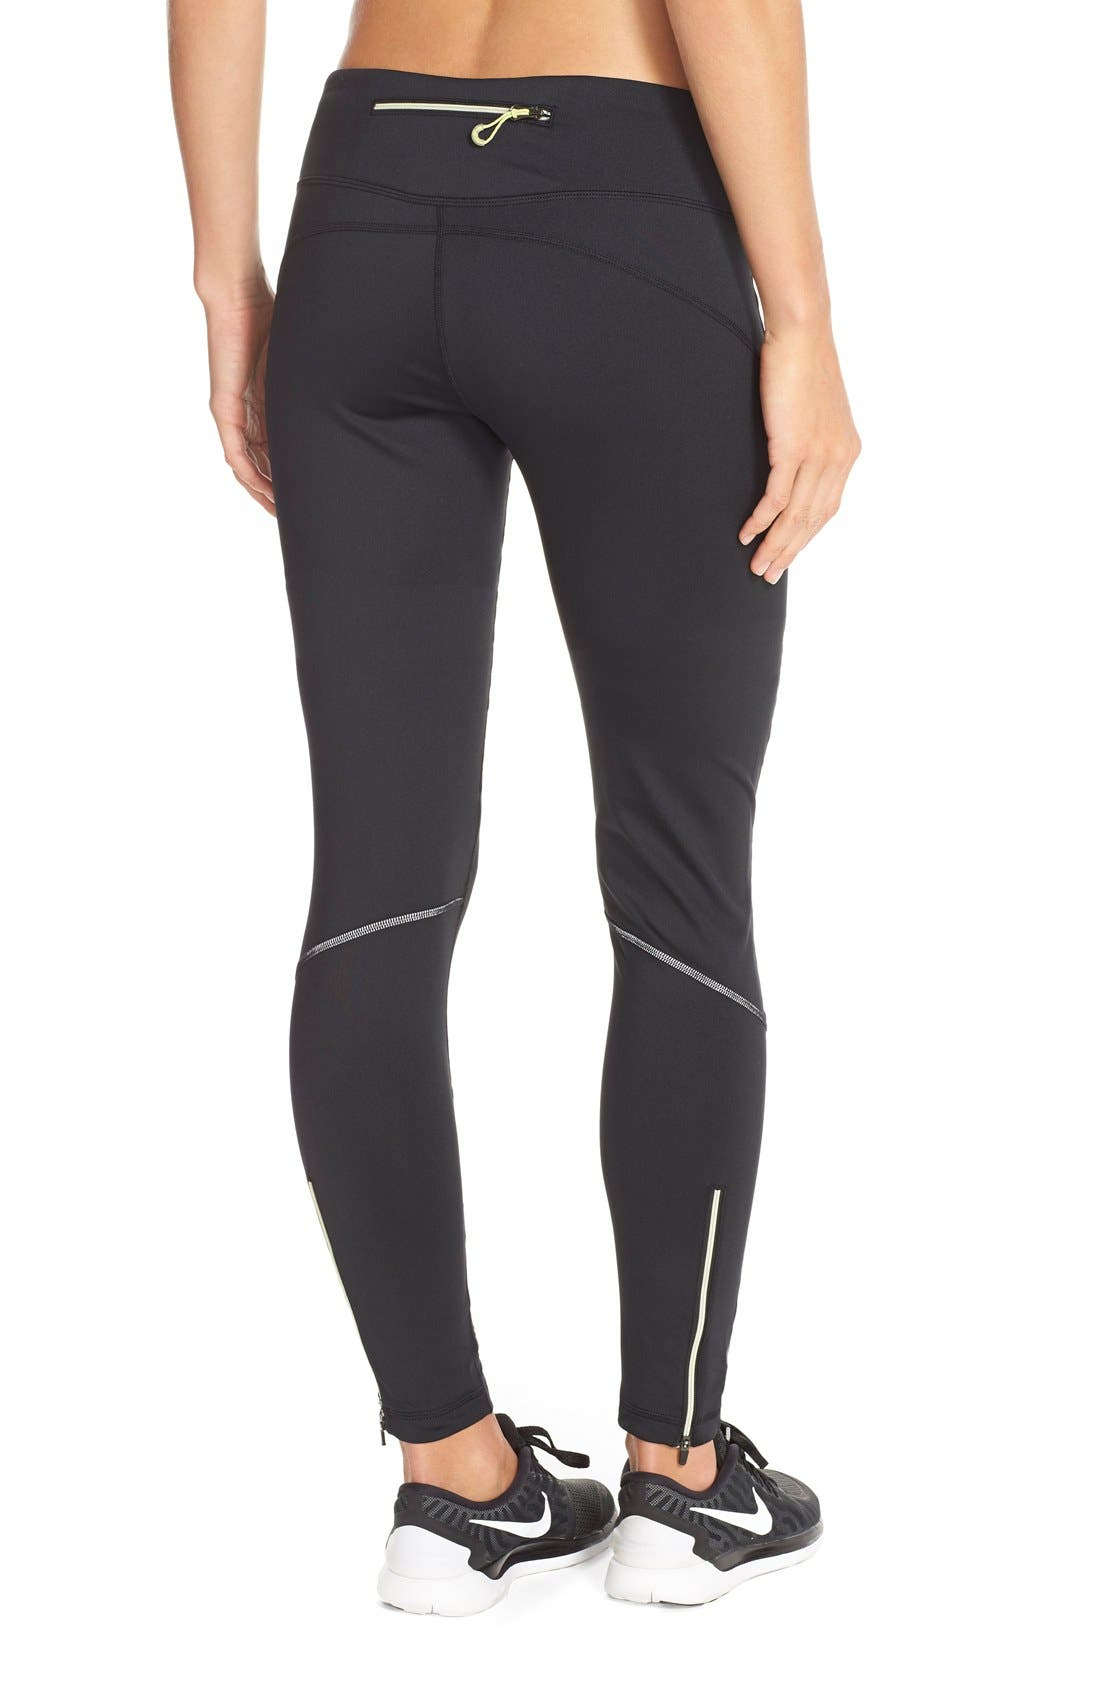 Alternate Image 2  - Zella 'Chill Out' Running Tights